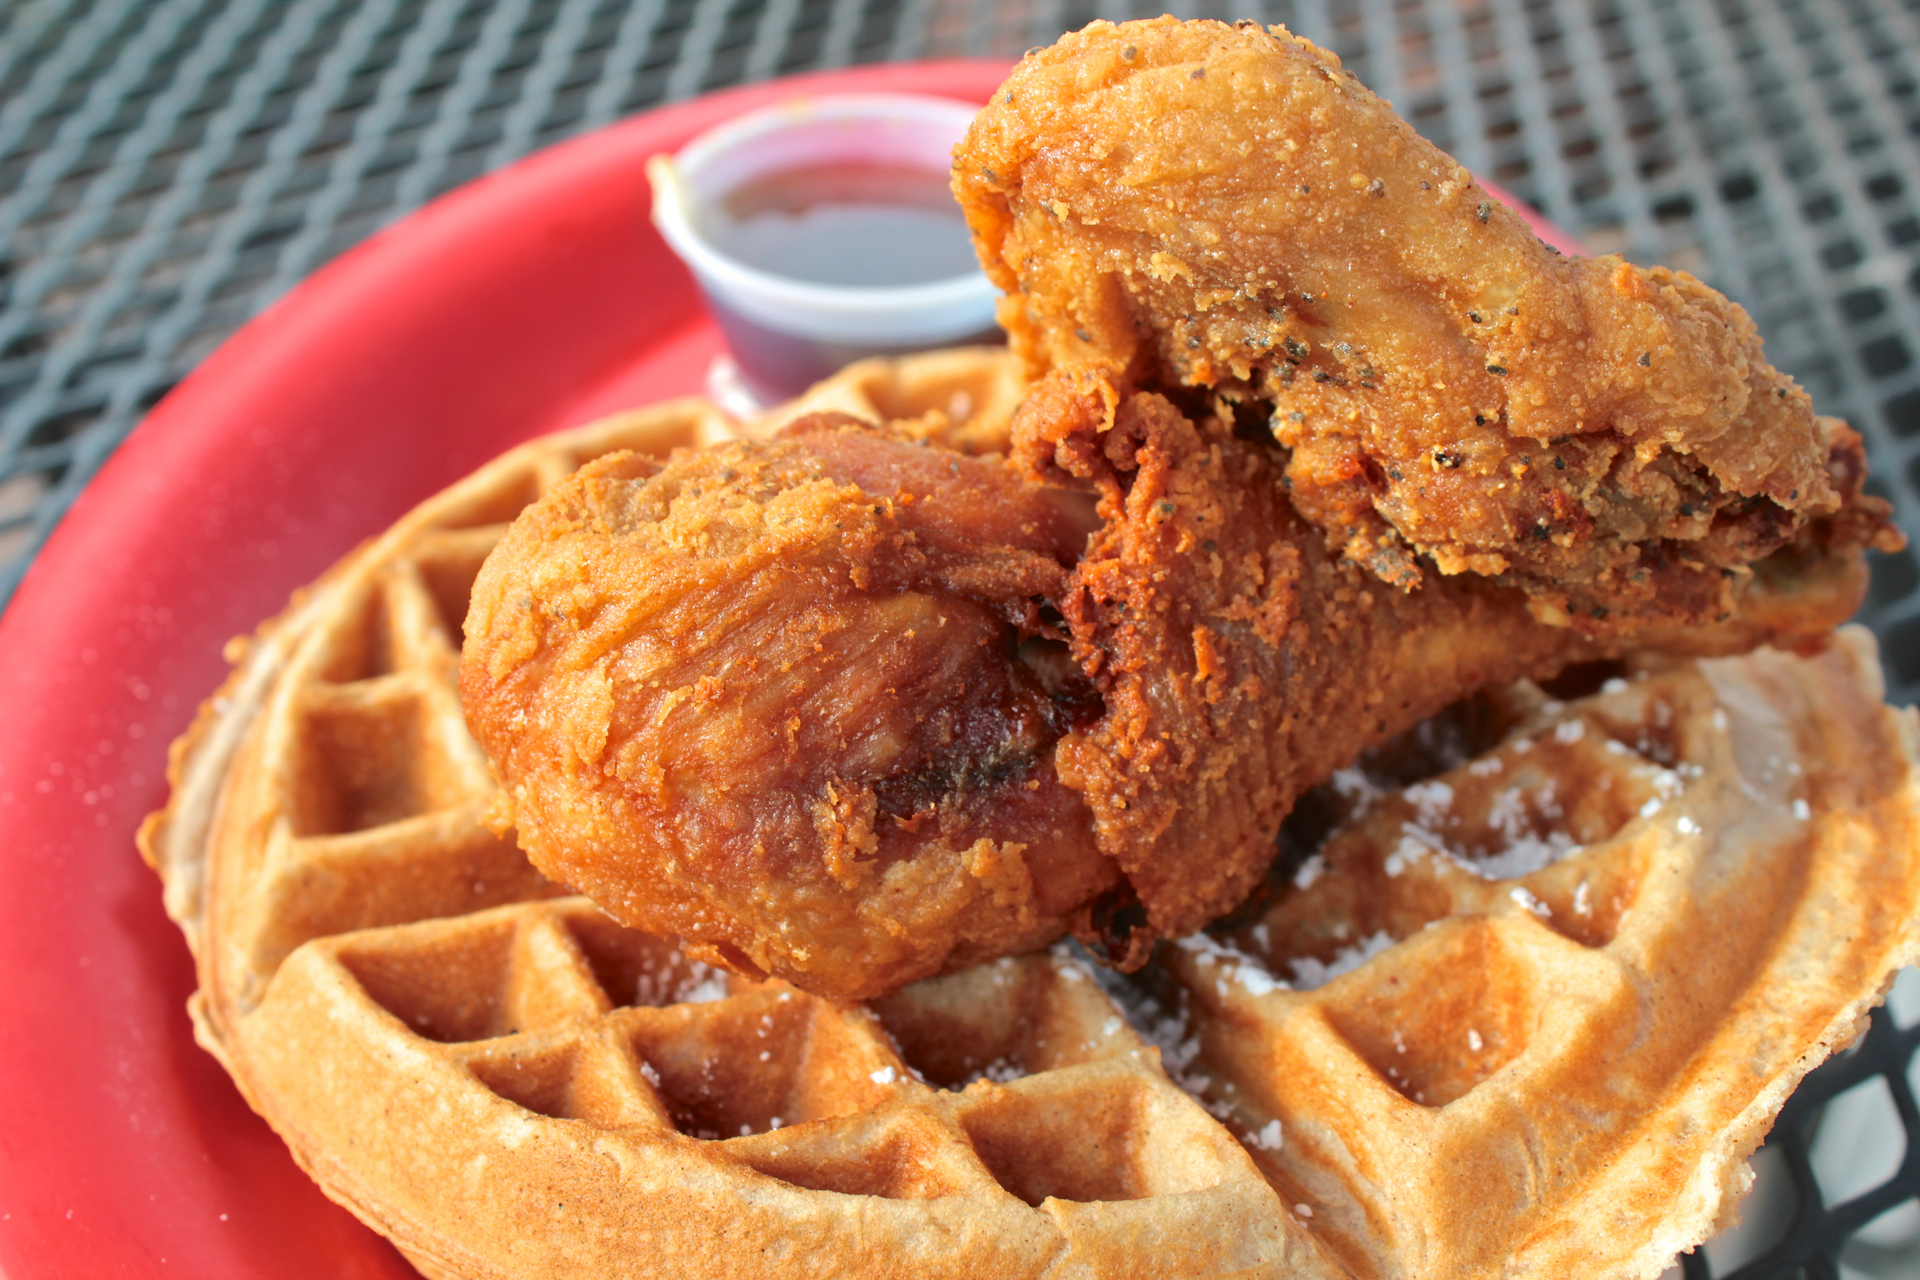 Southern fried chicken and waffles at Lillie Mae's House of Chicken and Wafflez.